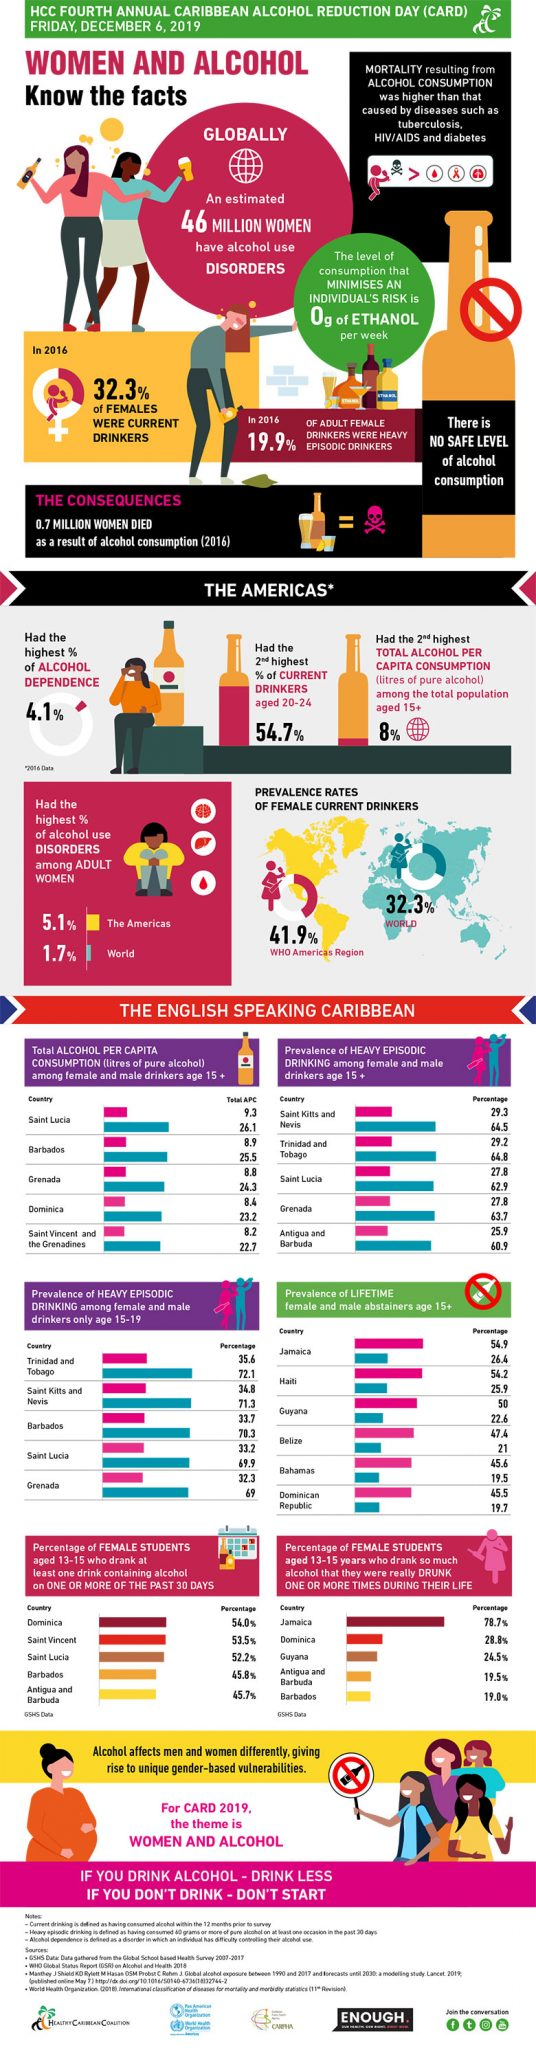 Caribbean Alcohol Reduction Day (CARD) 2019